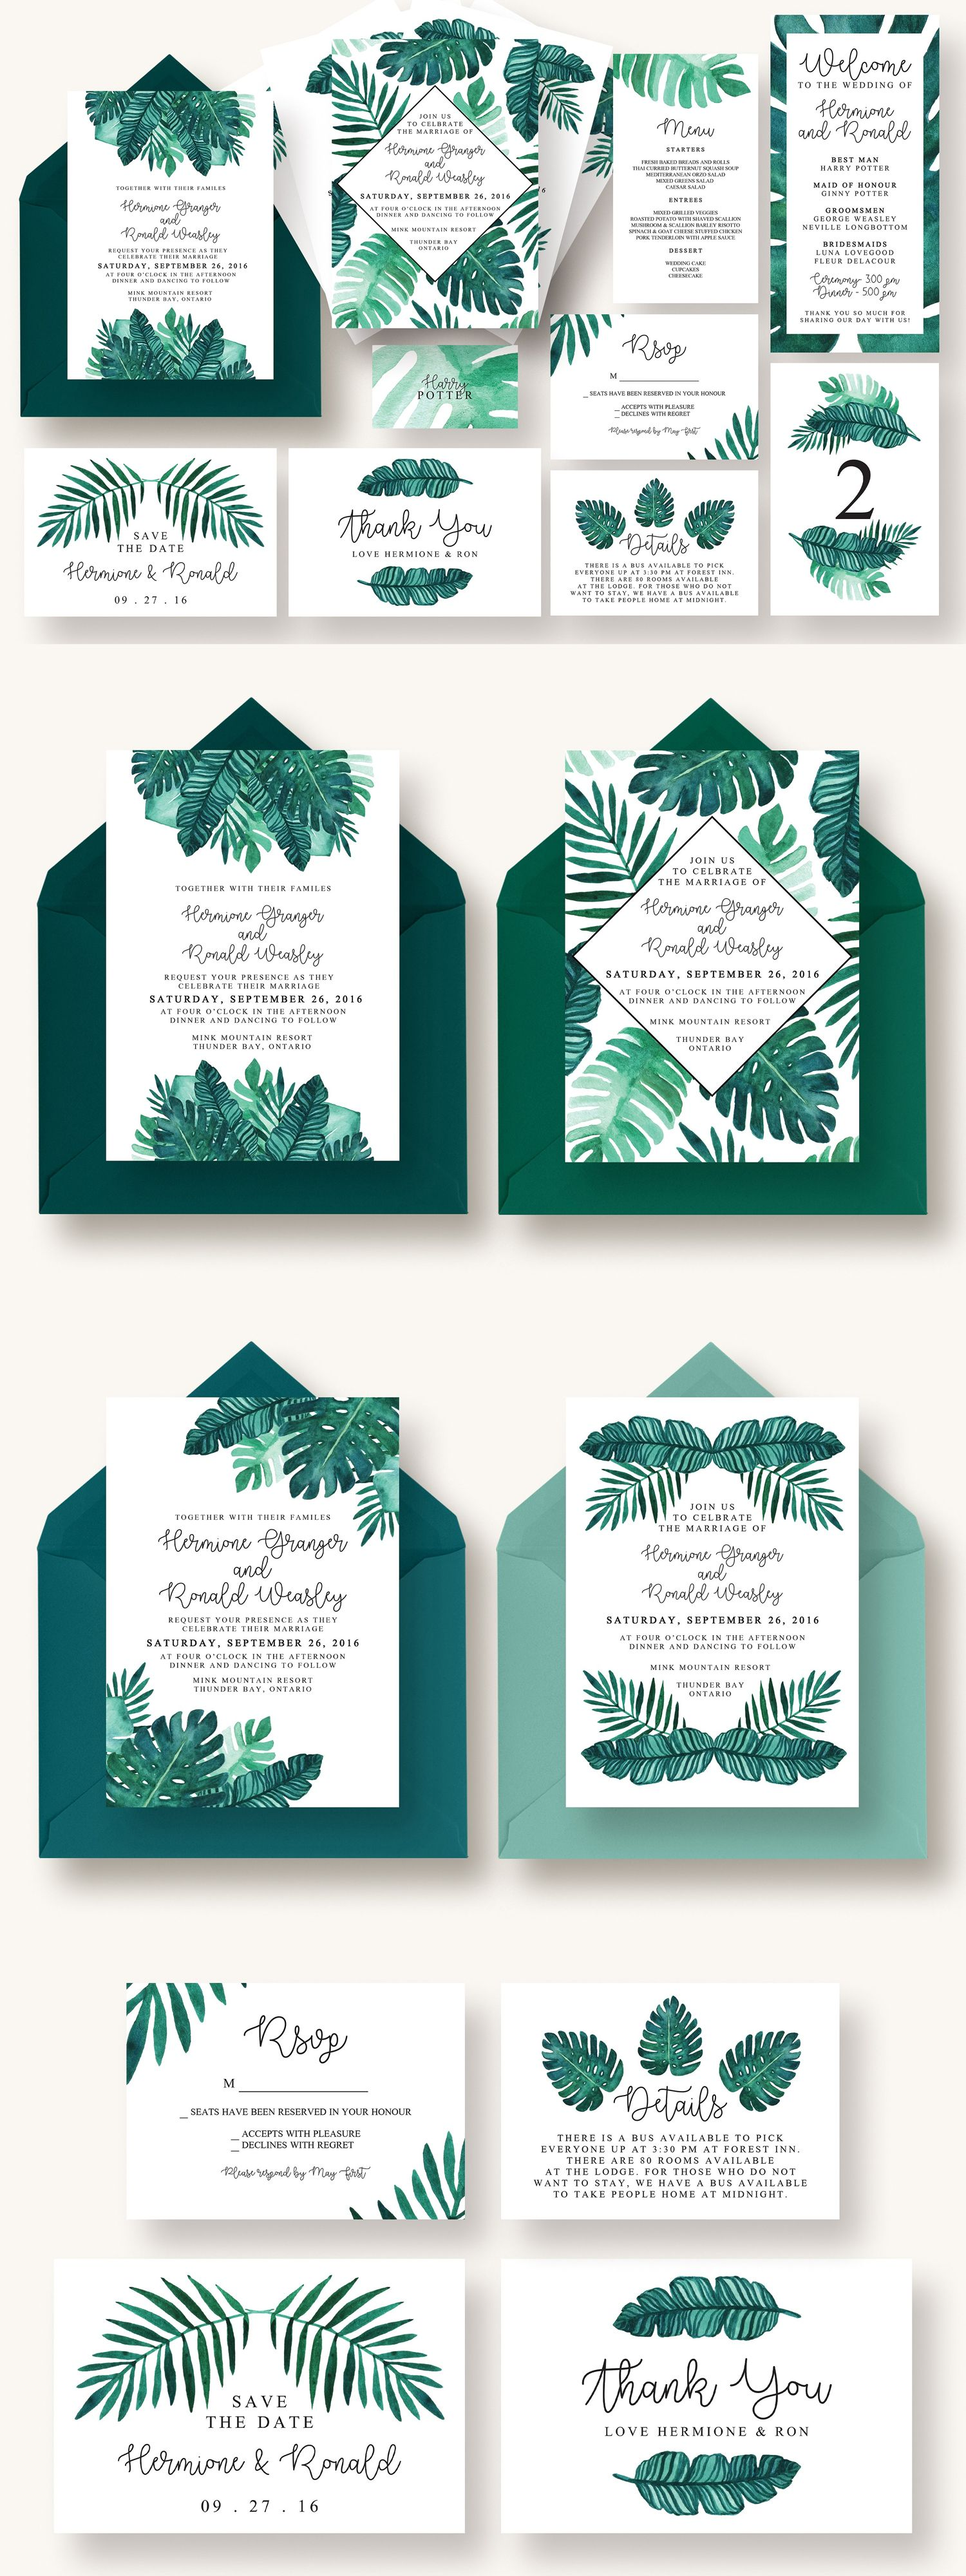 Tropical Leaves Invitation Suite | Pinterest | Invitation suite and ...